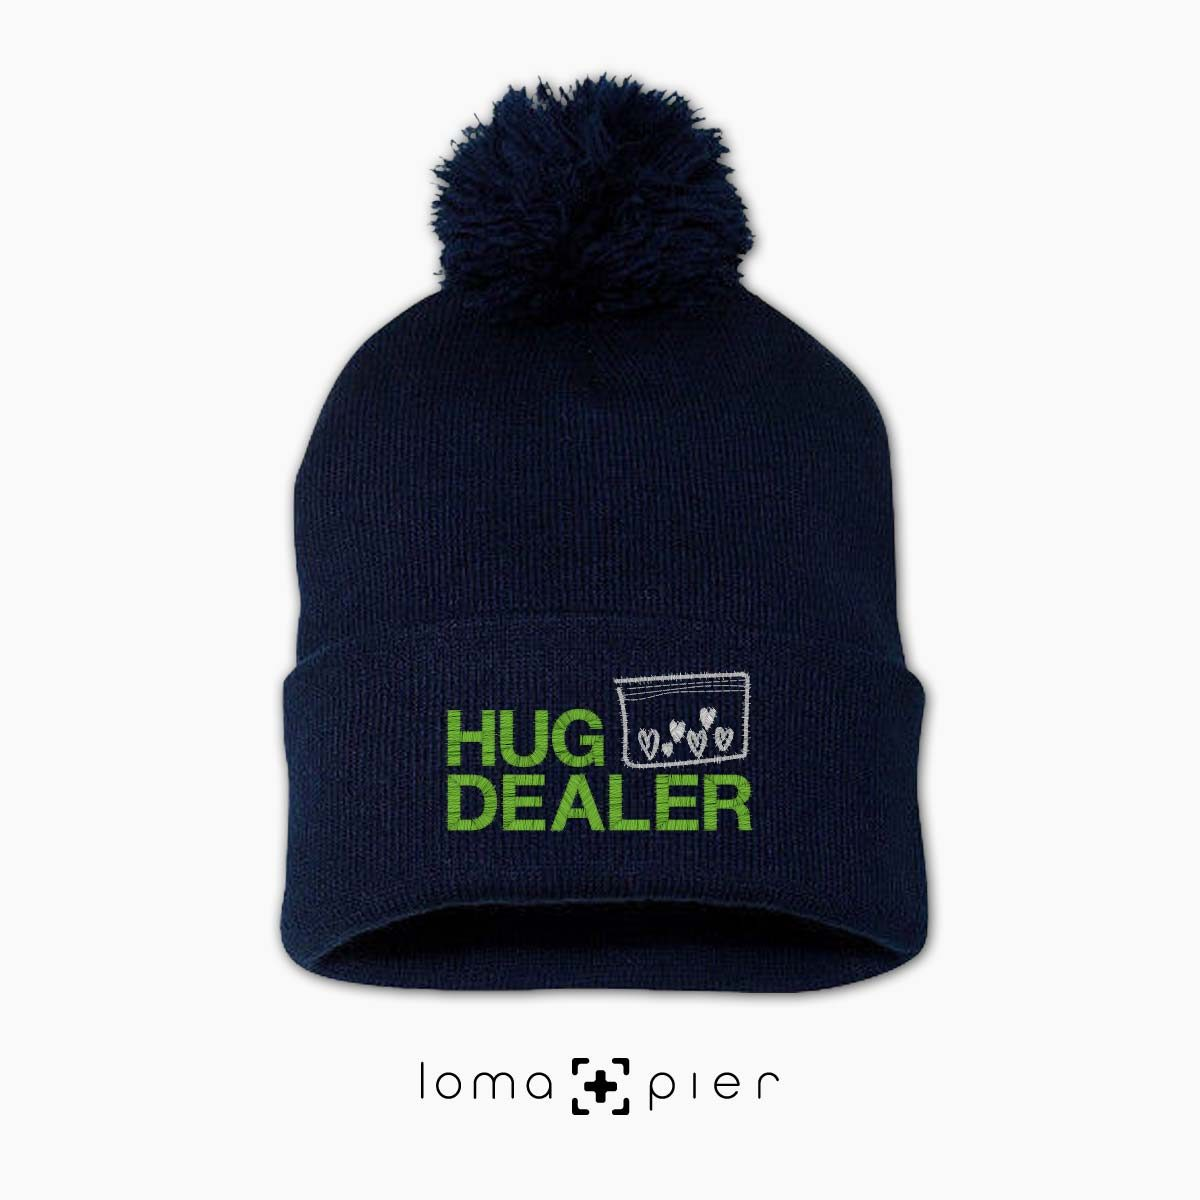 HUG DEALER icon embroidered on a navy blue pom pom beanie with multicolor thread by loma+pier hat store